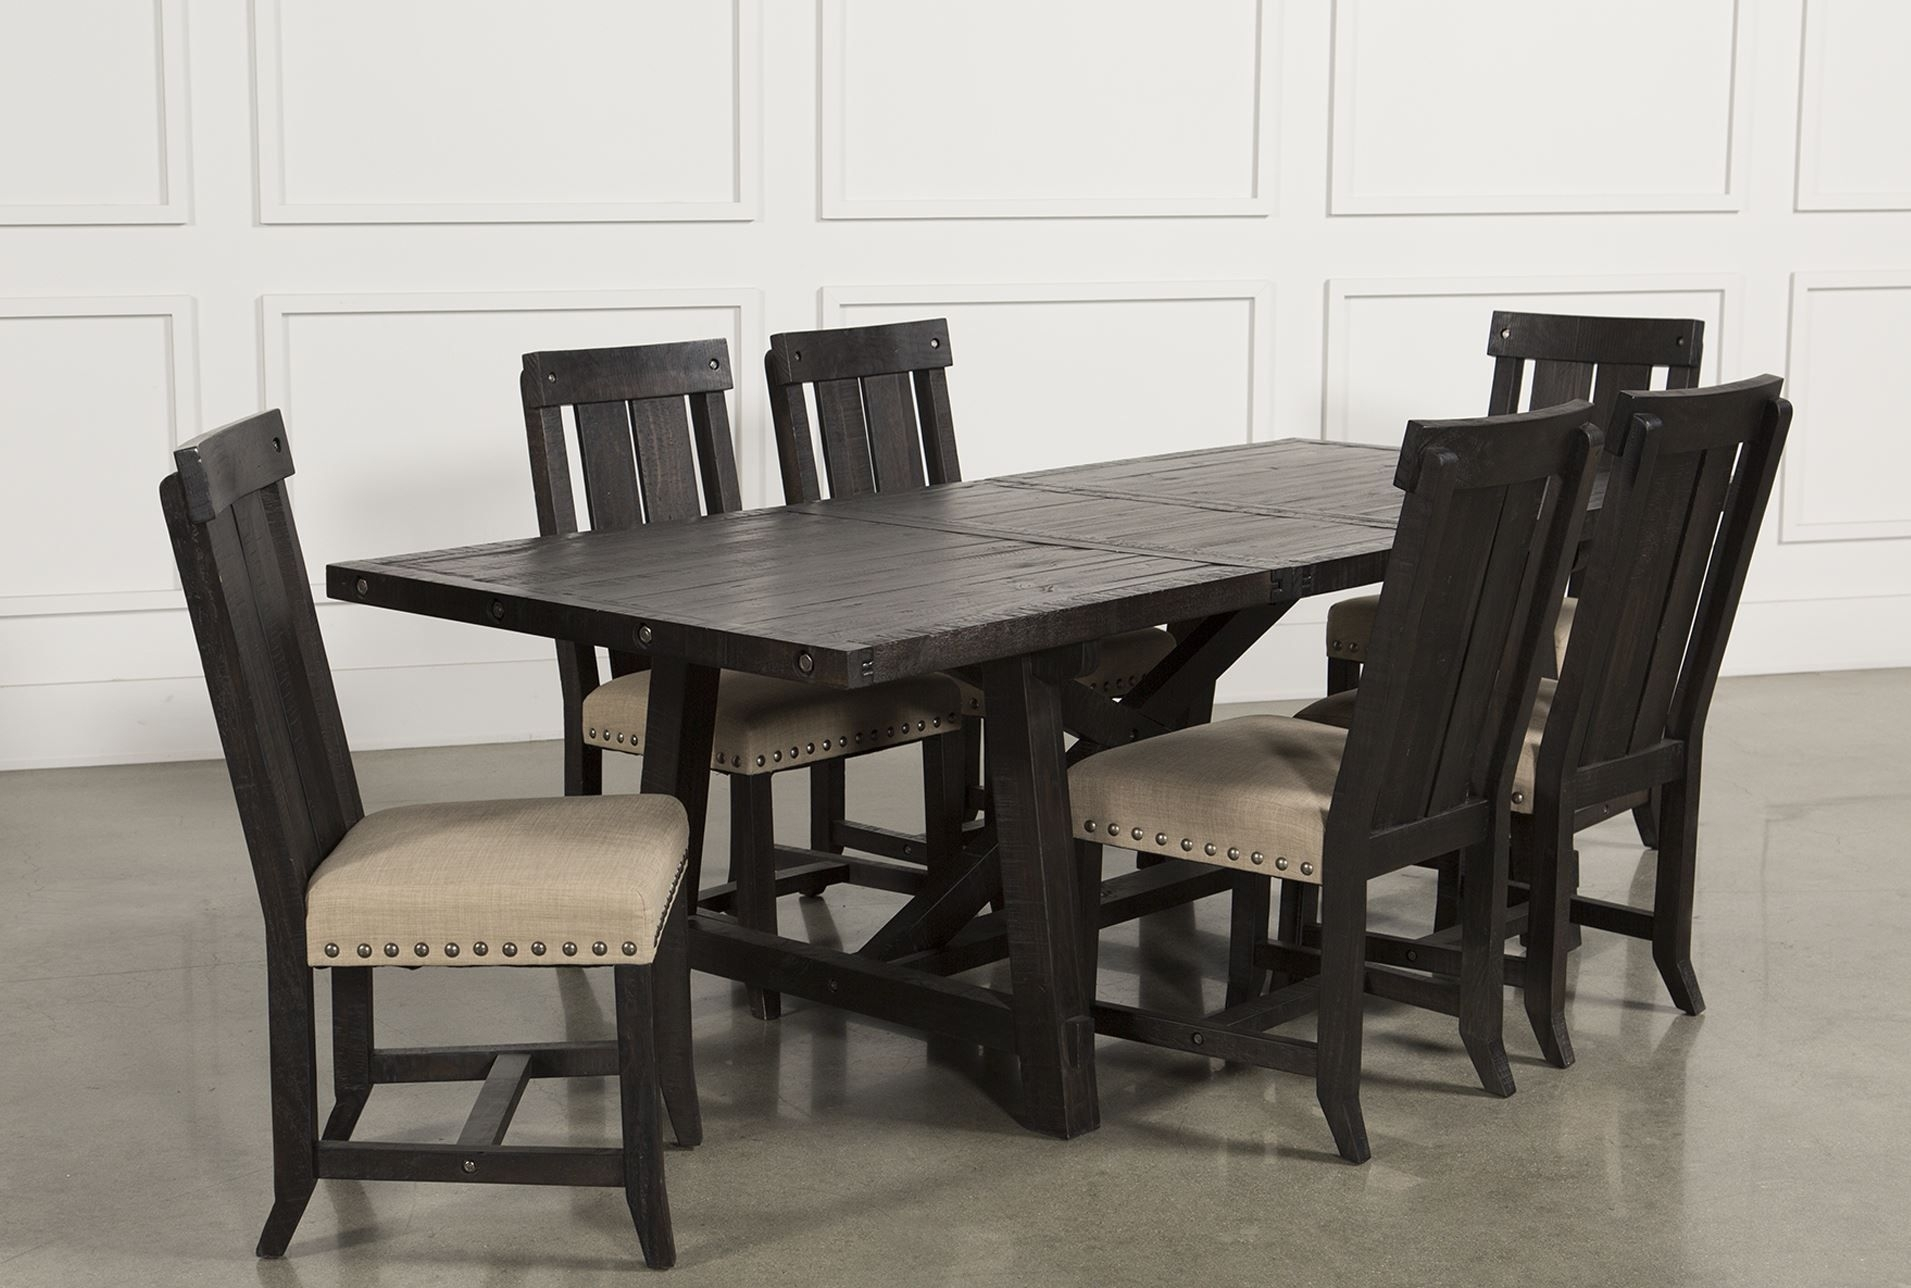 Jaxon 7 Piece Rectangle Dining Set W/wood Chairs | Home, Future Home In Recent Partridge 7 Piece Dining Sets (View 14 of 20)